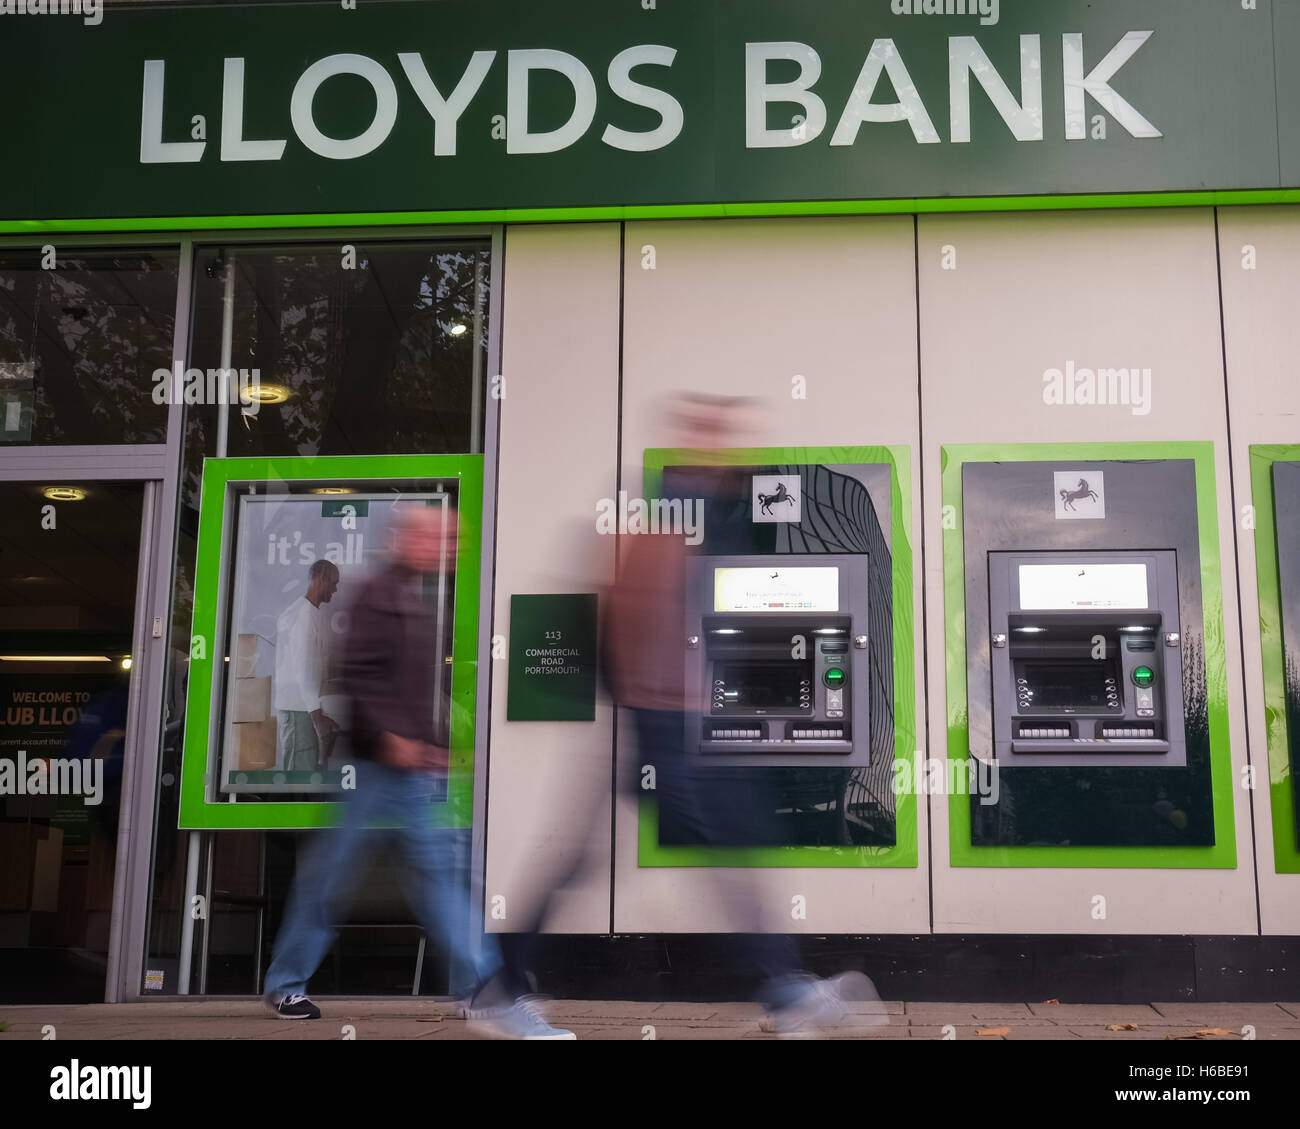 A general view of Lloyds Bank in Commercial Road, Portsmouth - Stock Image